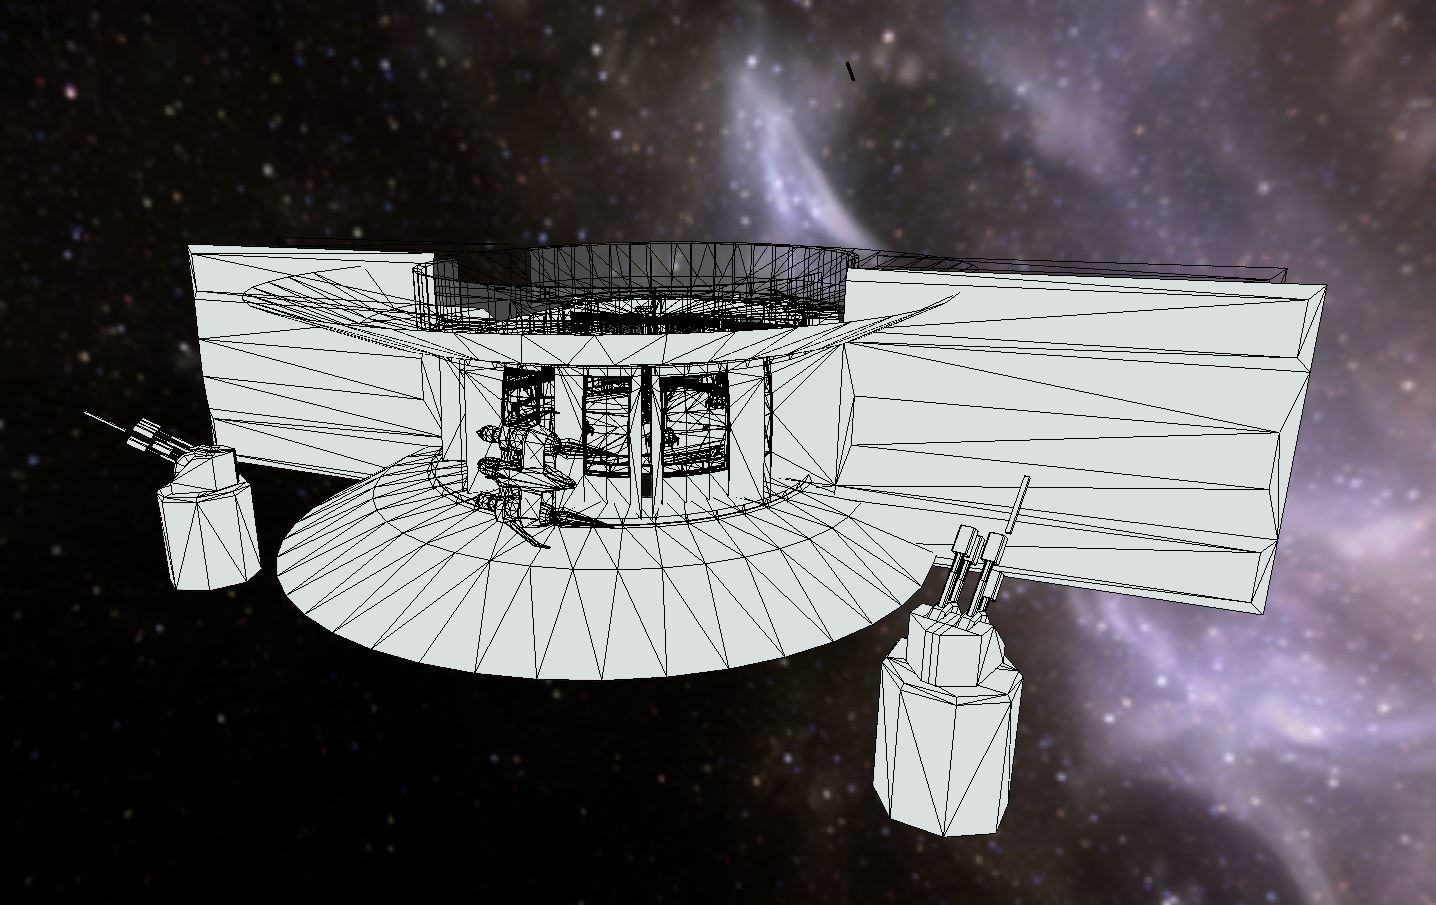 Outside the station (wireframe)